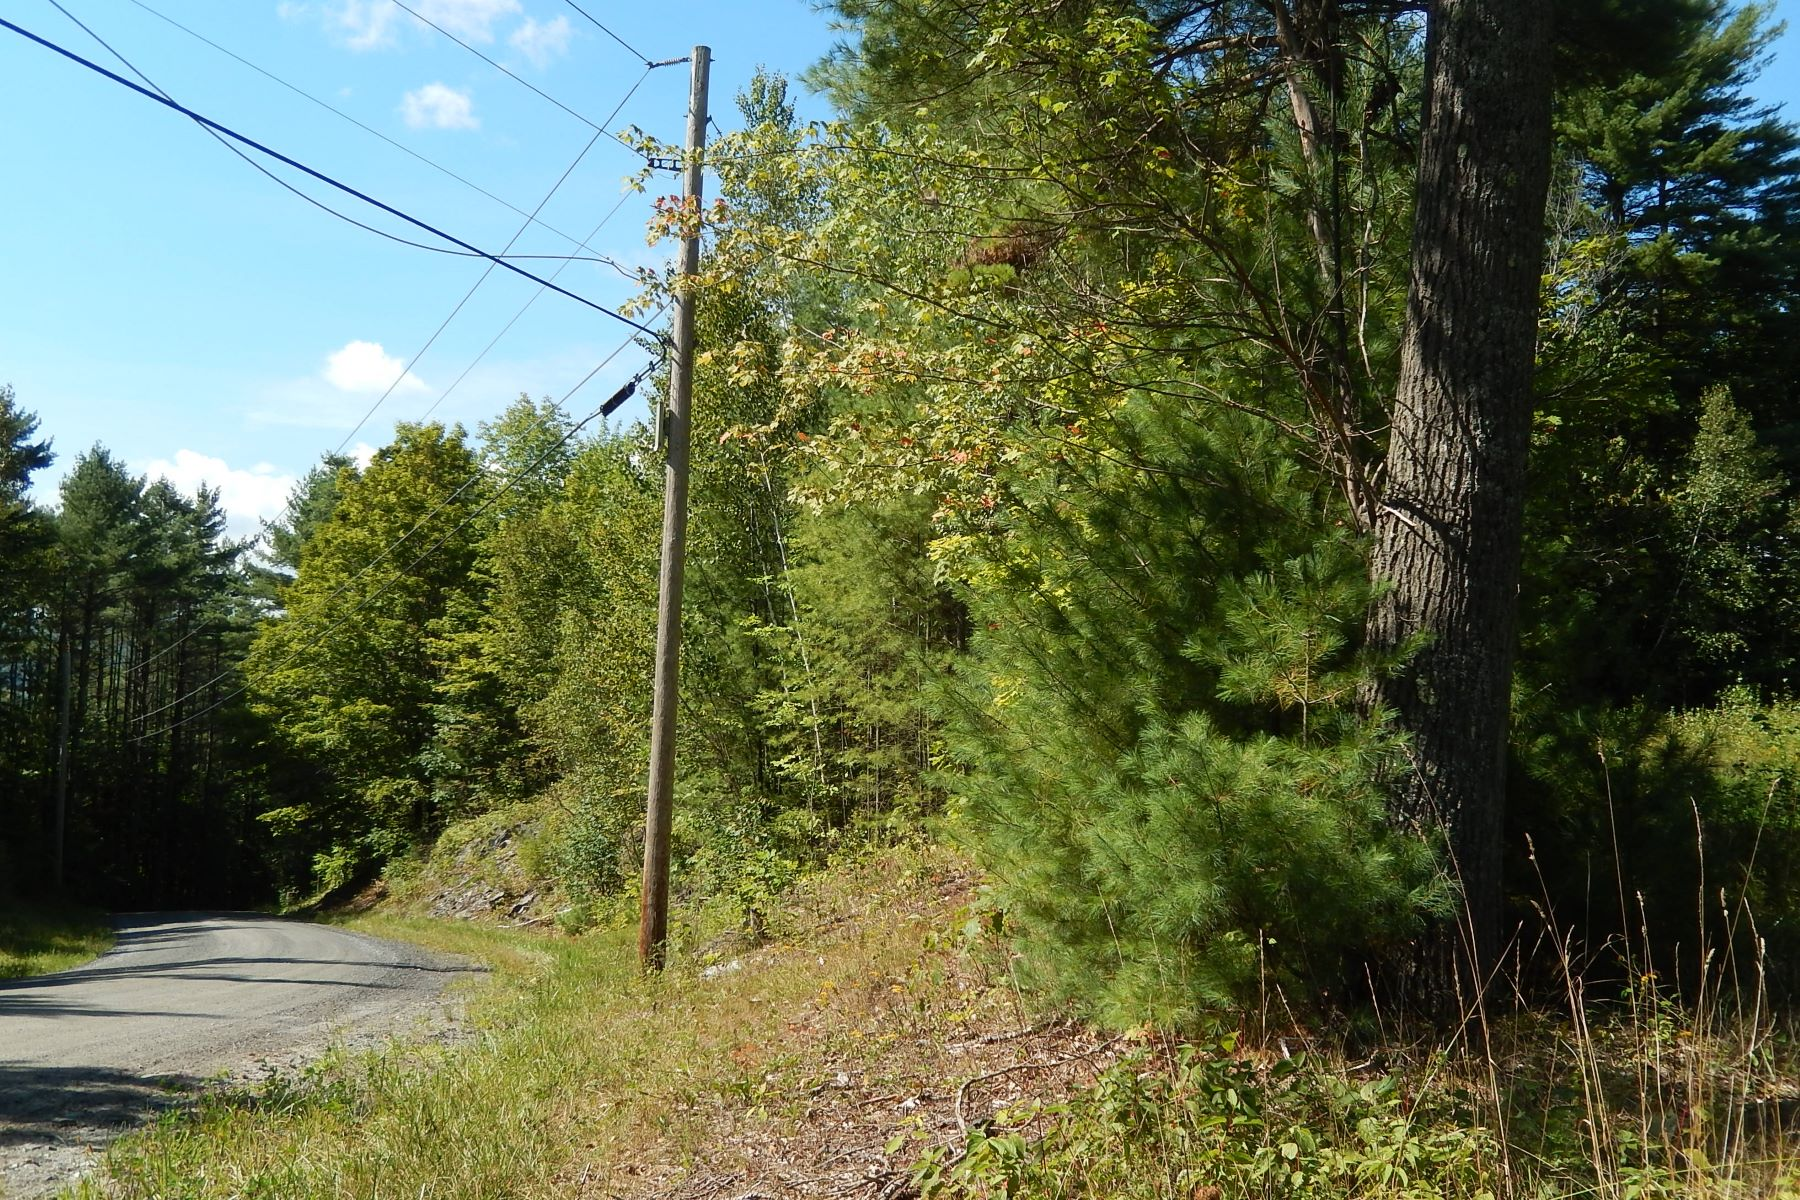 Land for Sale at Four Building Lots in Grandview Acres 00 River Rd And Mazzilli Dr Piermont, New Hampshire 03779 United States